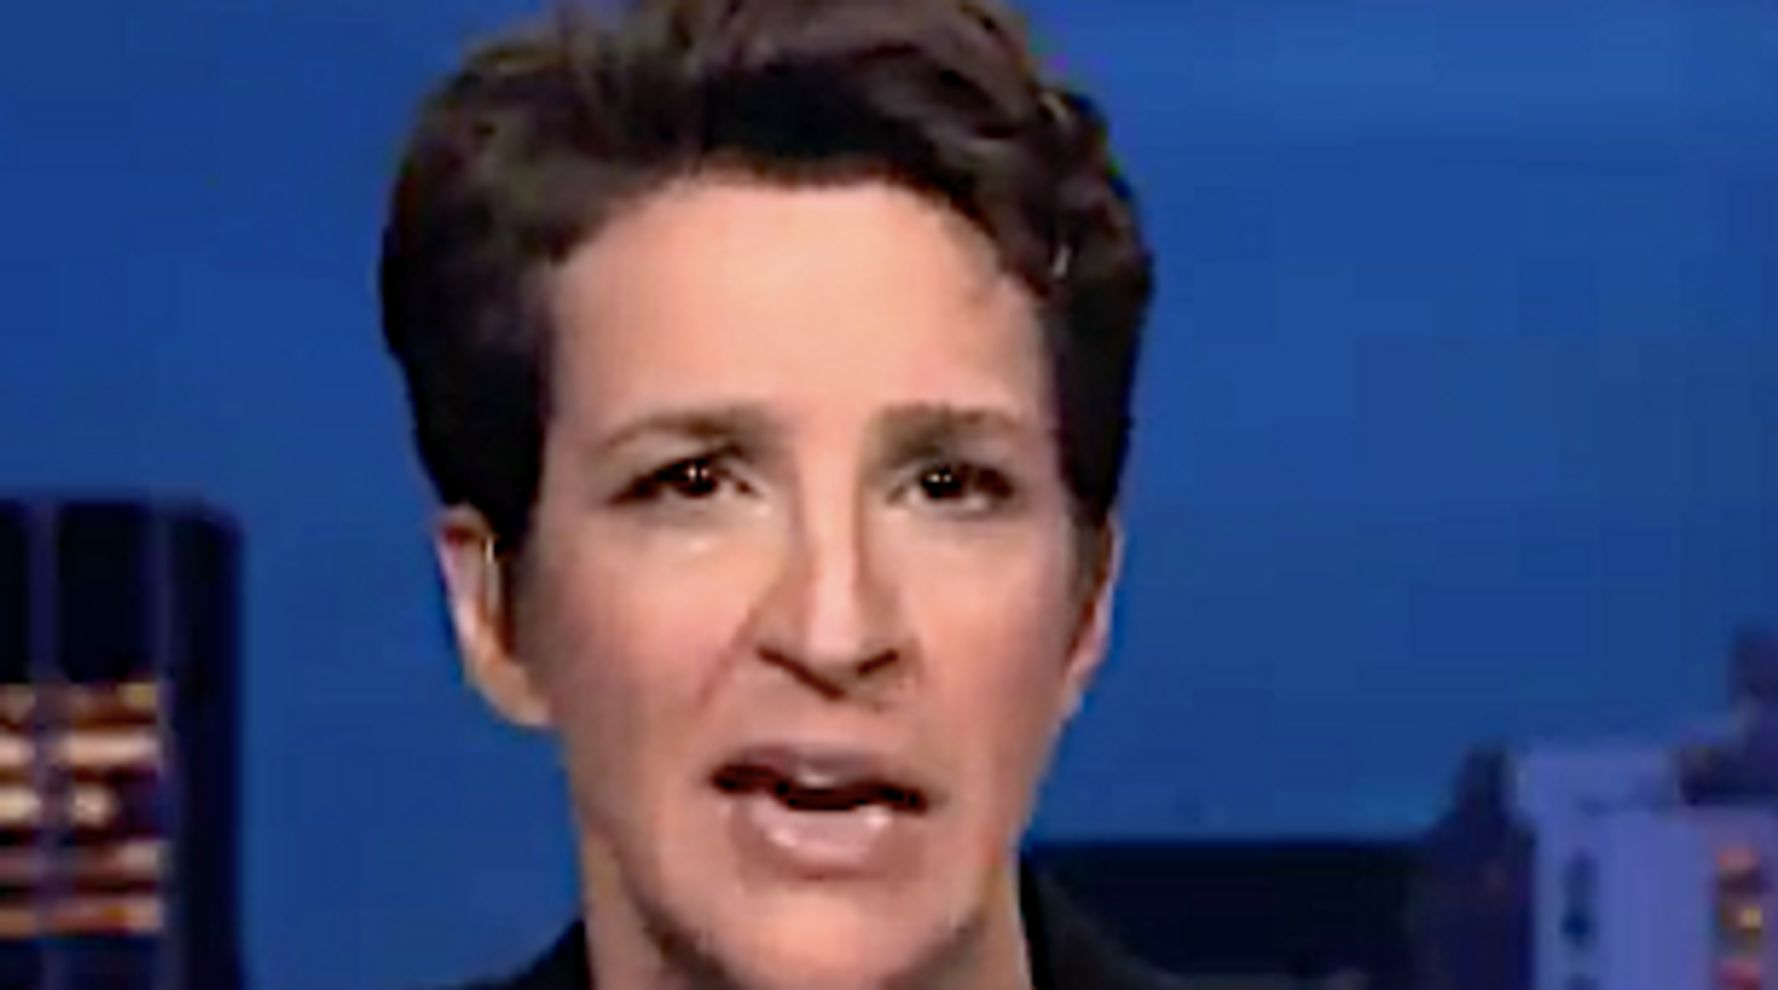 Rachel Maddow Burns Trump Down After He Tweets Her Clip With Thanks